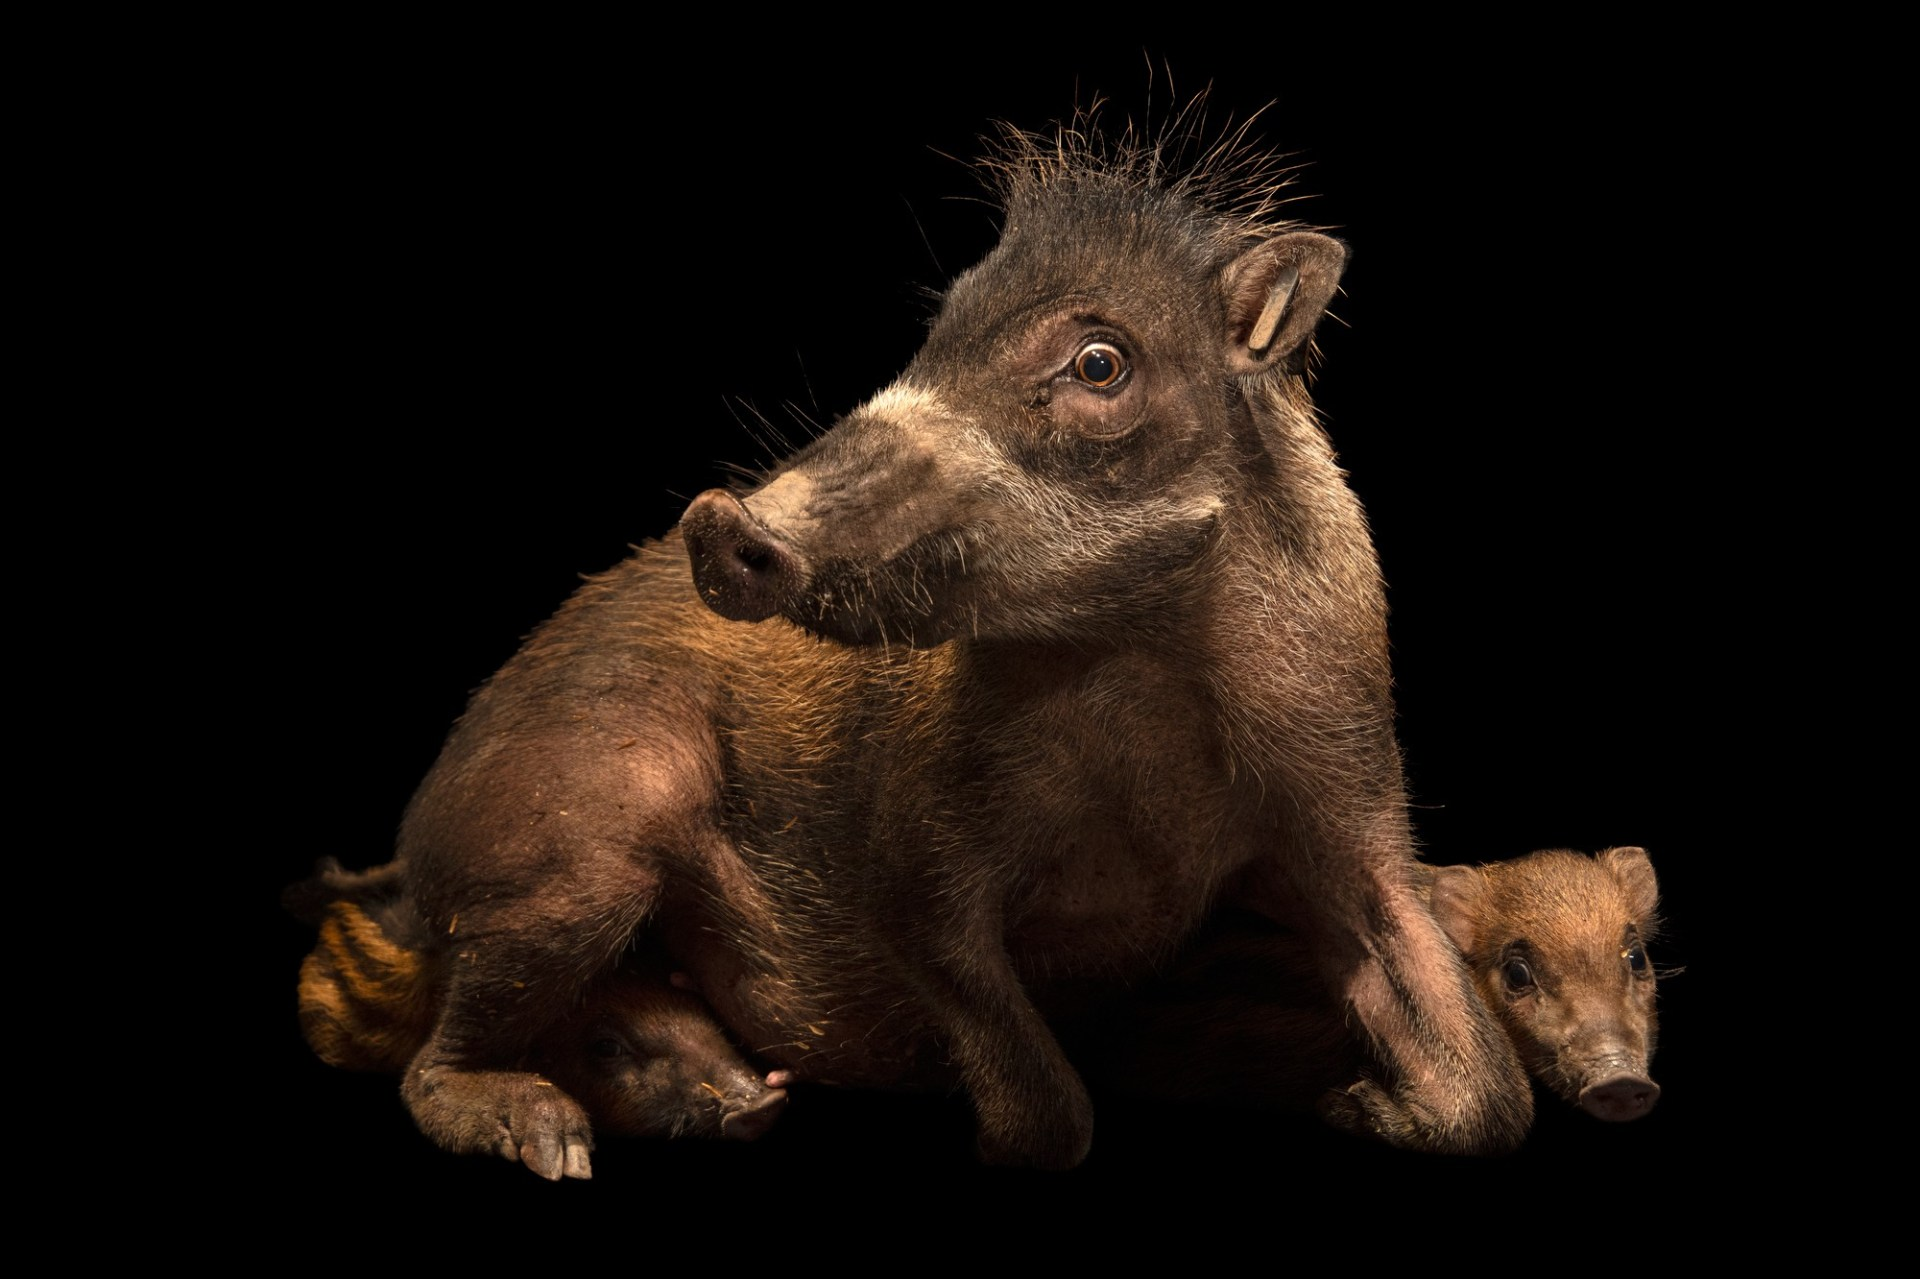 Photo: Three critically endangered Negros warty pigs (Sus cebifrons negrinus) at Negros Forest Park.